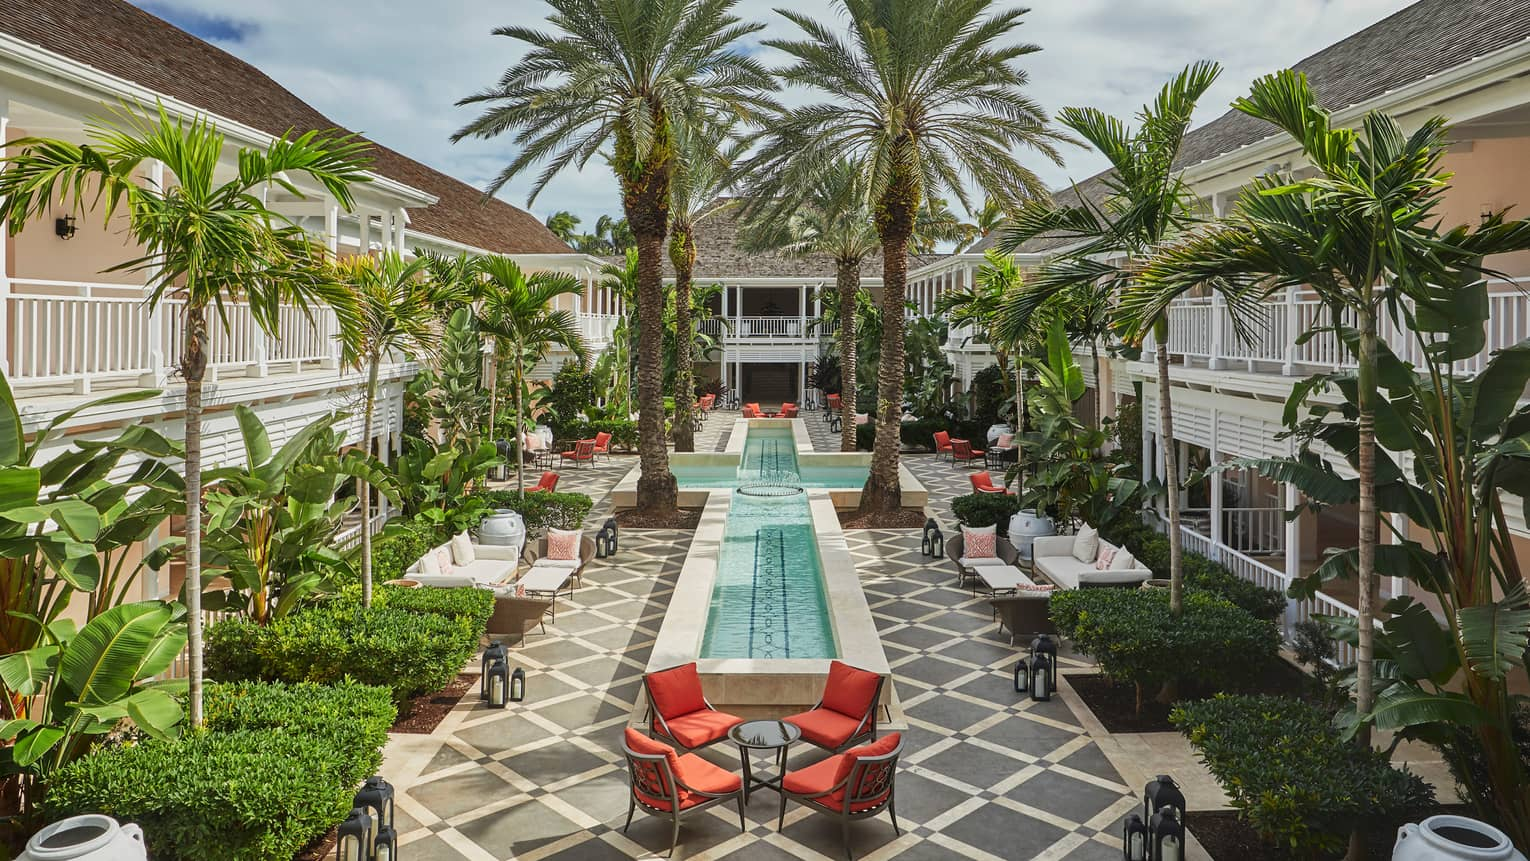 Patio chairs, tables around cross-shaped fountain, large palm trees in Hartford Courtyard